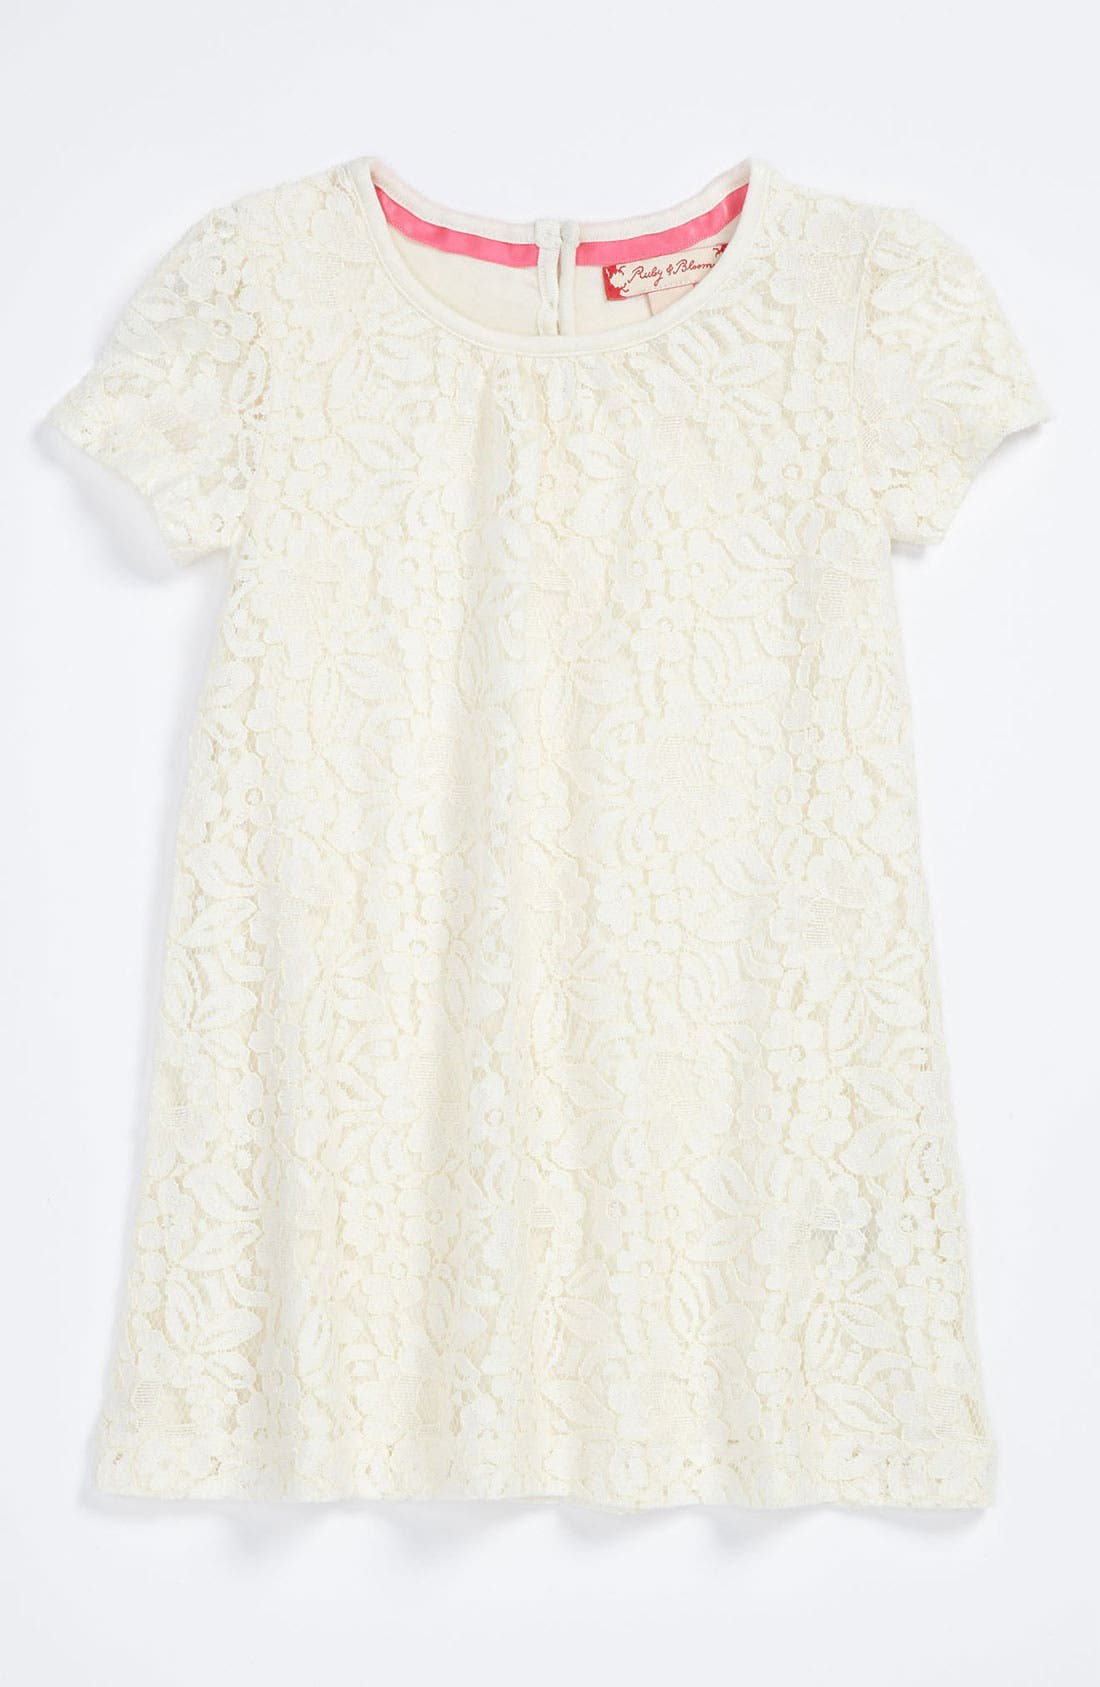 Alternate Image 1 Selected - Ruby & Bloom 'Paulina' Lace Dress (Baby Girls)